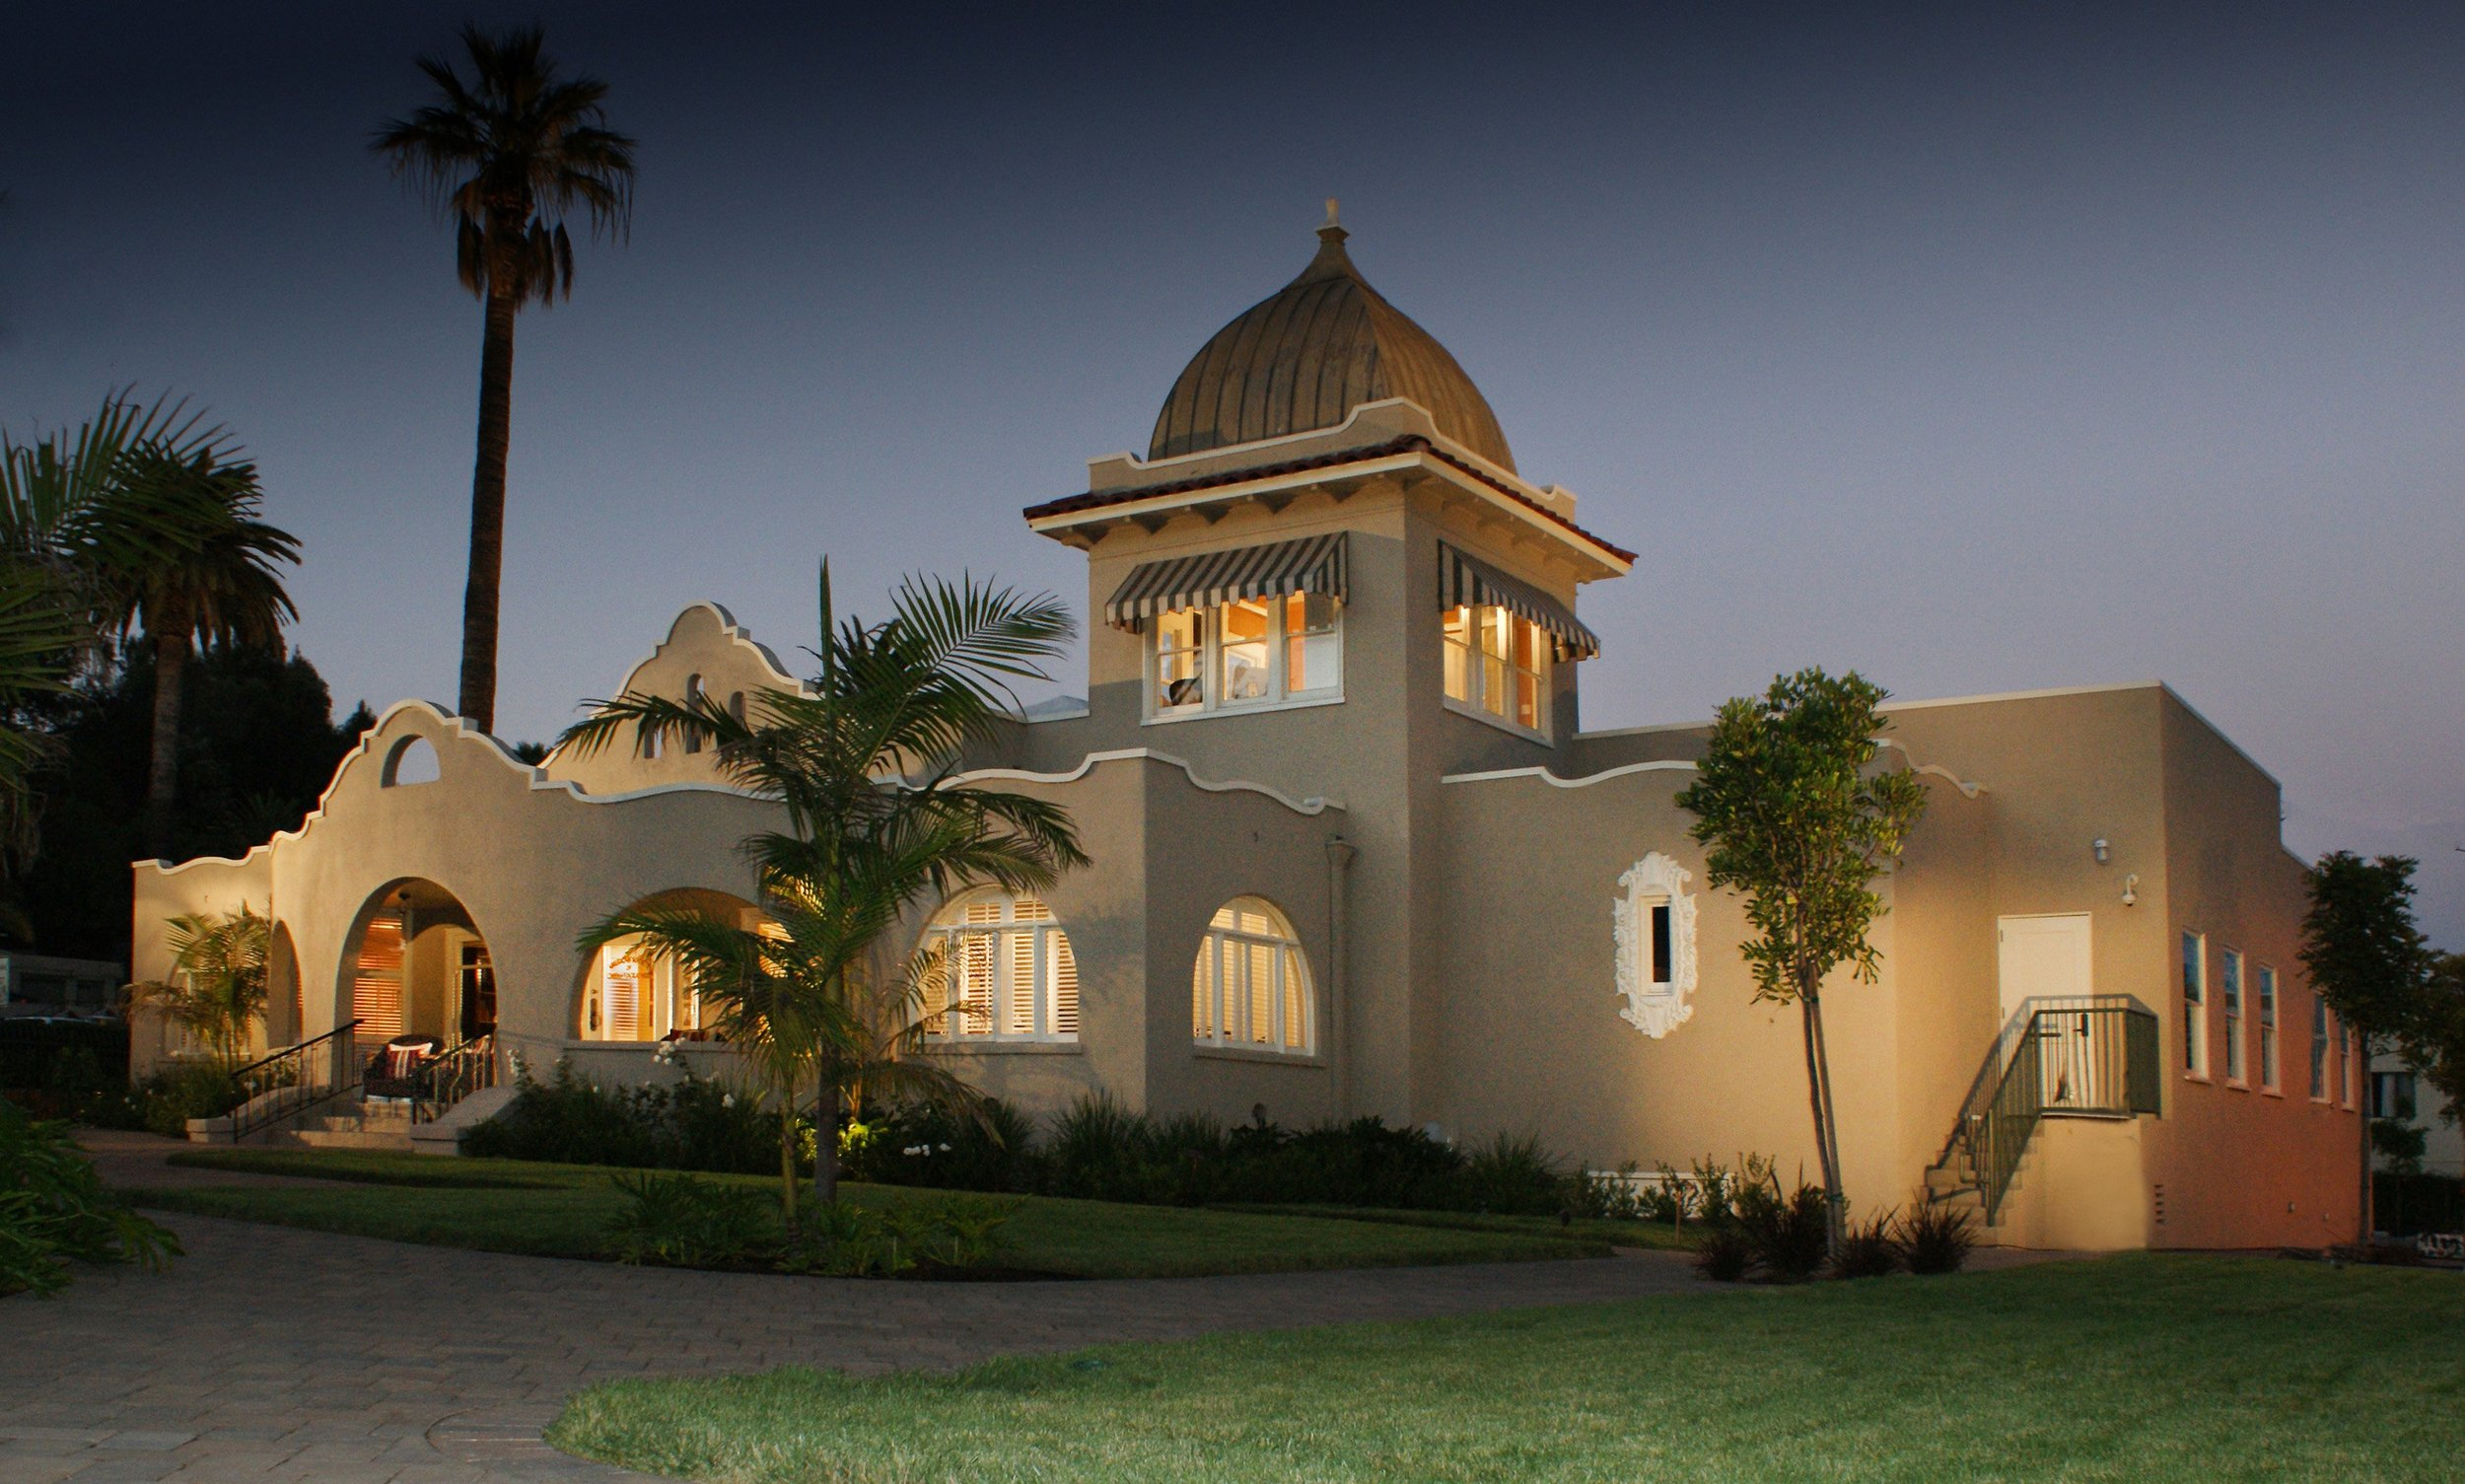 The ASC Clubhouse in Hollywood at night. Photo by Isidore Mankofsky, ASC. https://theasc.com/asc/asc-clubhouse